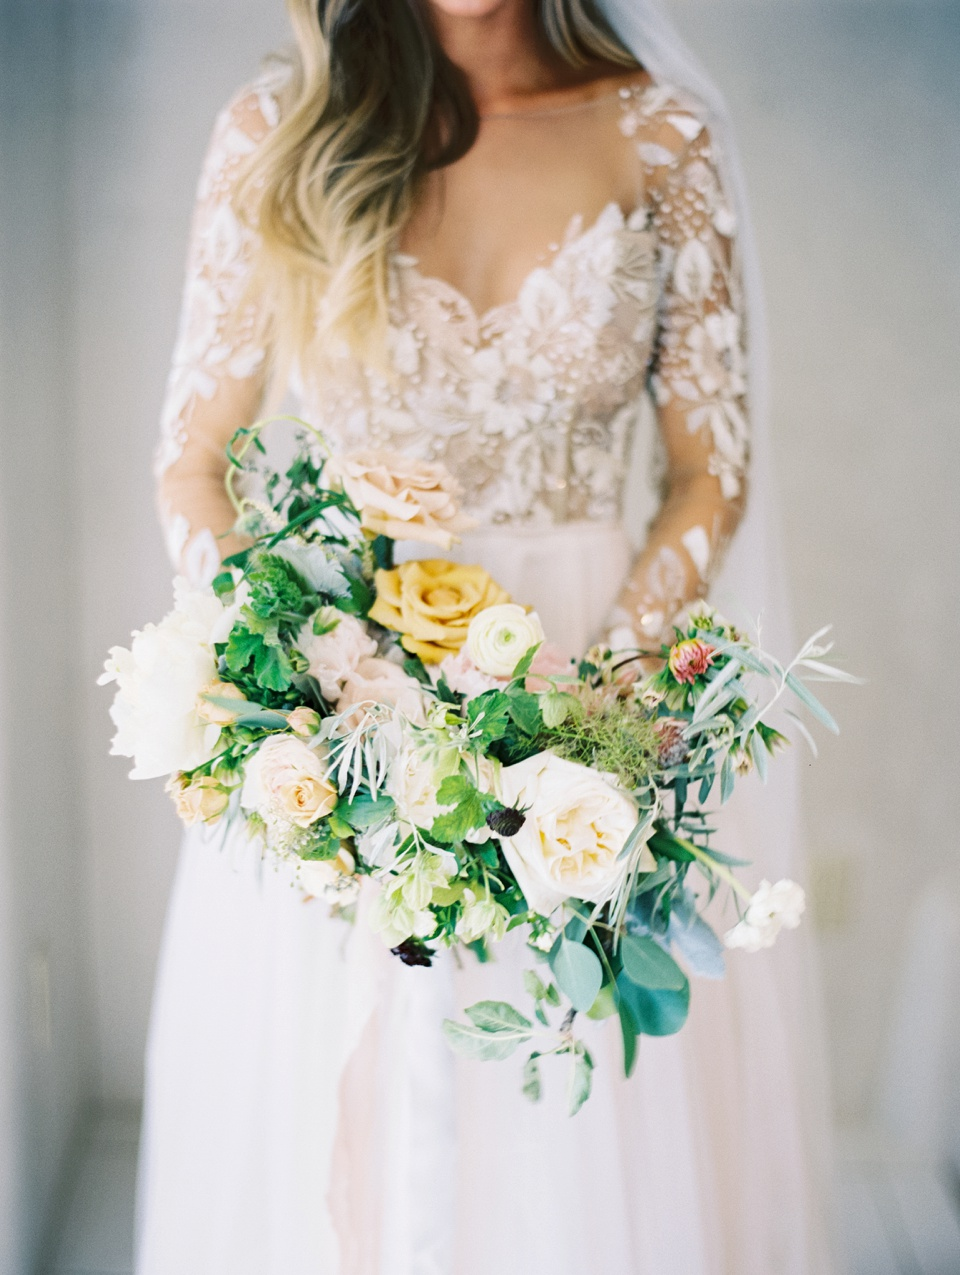 Santa Fe Wedding Florist, Floriography Flowers | Becca Lea Photography